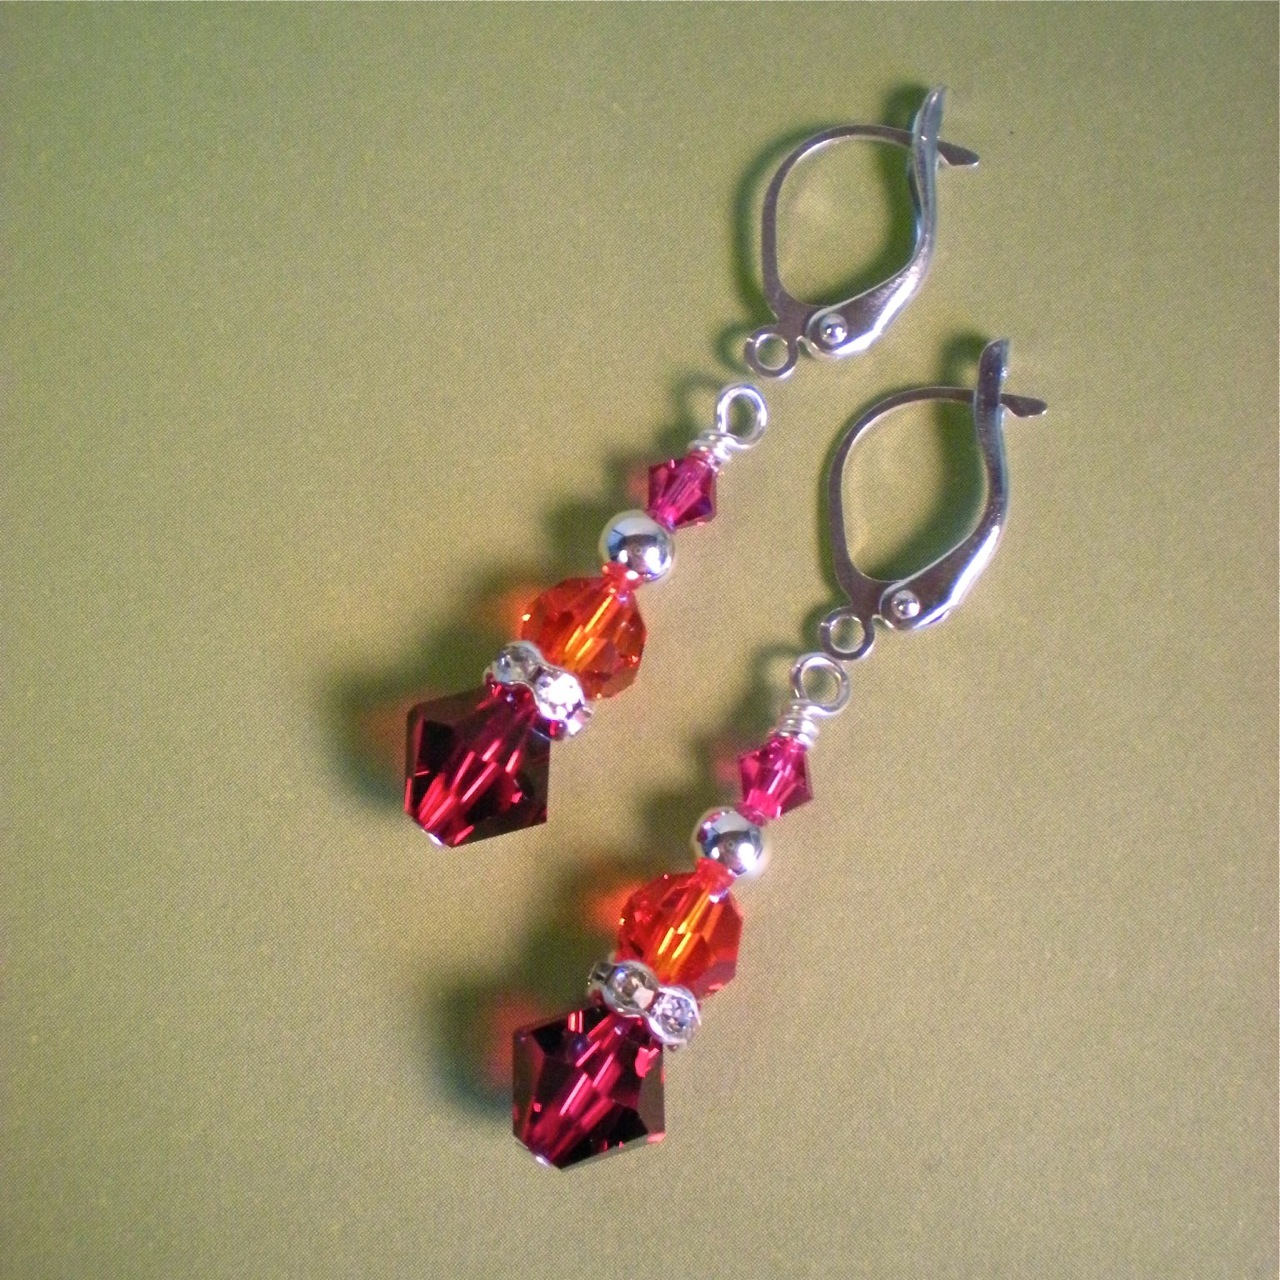 Jewelry, Bridesmaids, Bridesmaids Dresses, Fashion, orange, pink, silver, Earrings, Bridesmaid, Crystal, Swarovski, Fuchsia, Graduated, Ruby, Fireopal